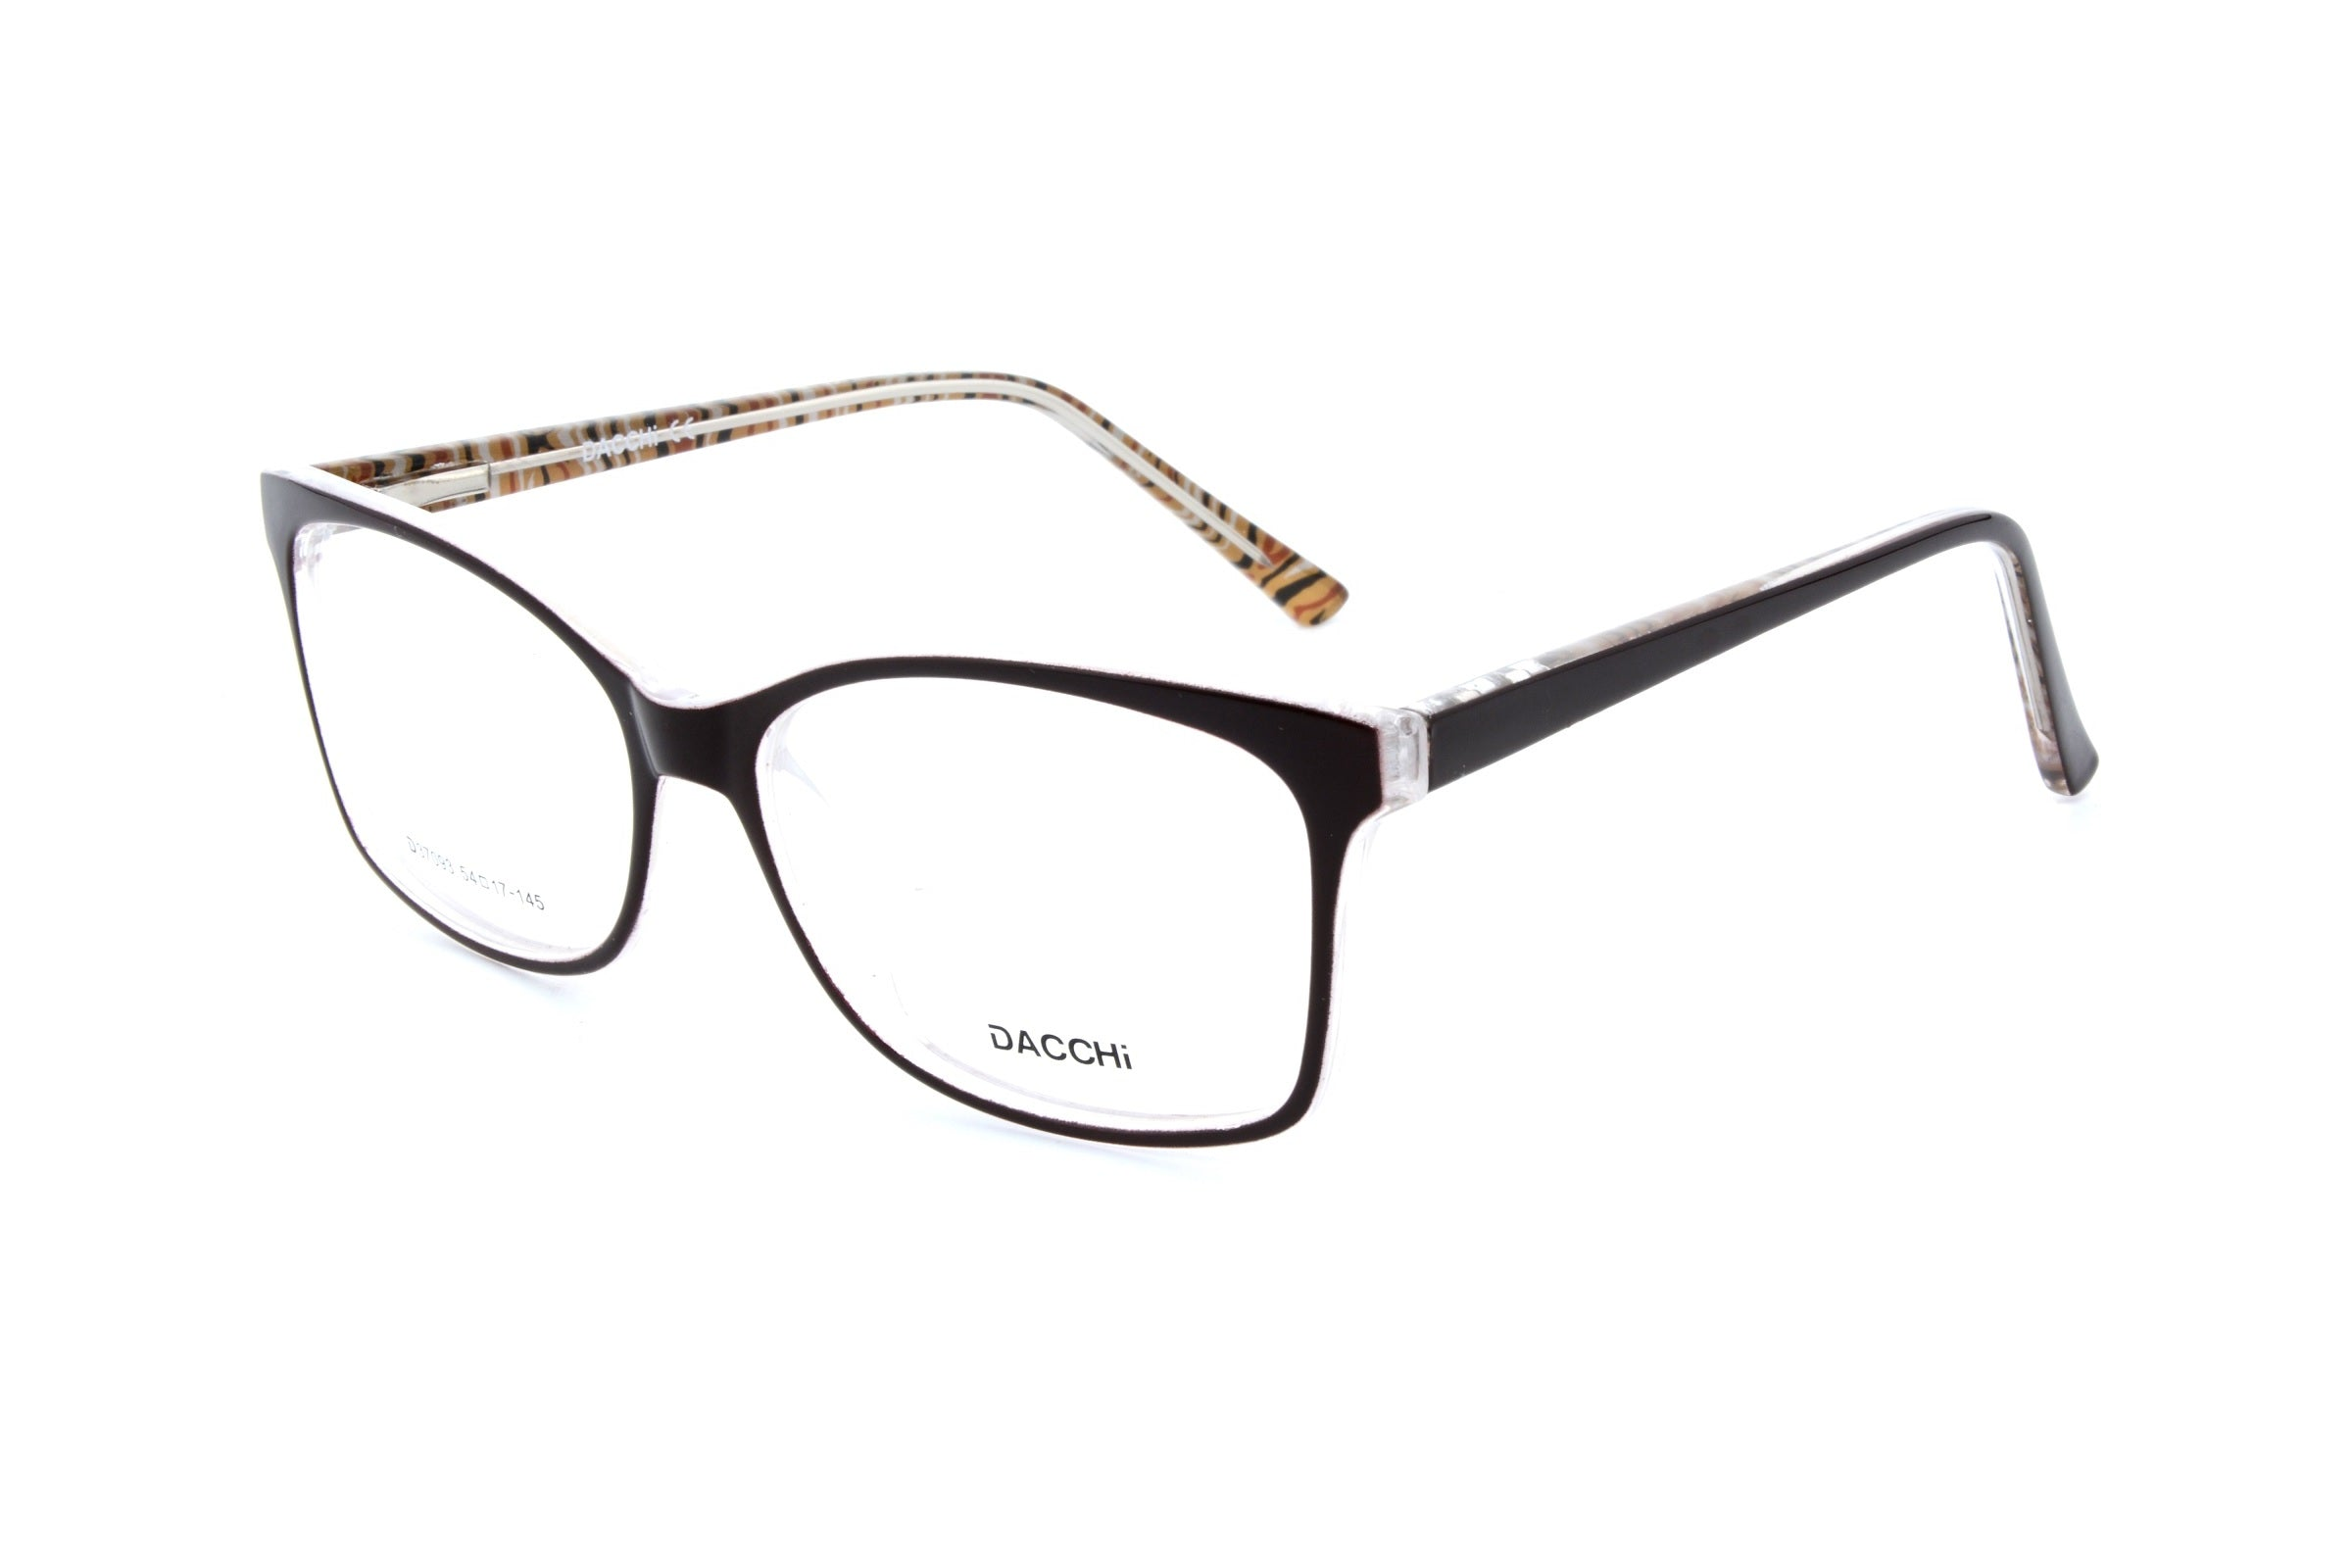 Dacchi eyewear 37093, C2 - Optics Trading